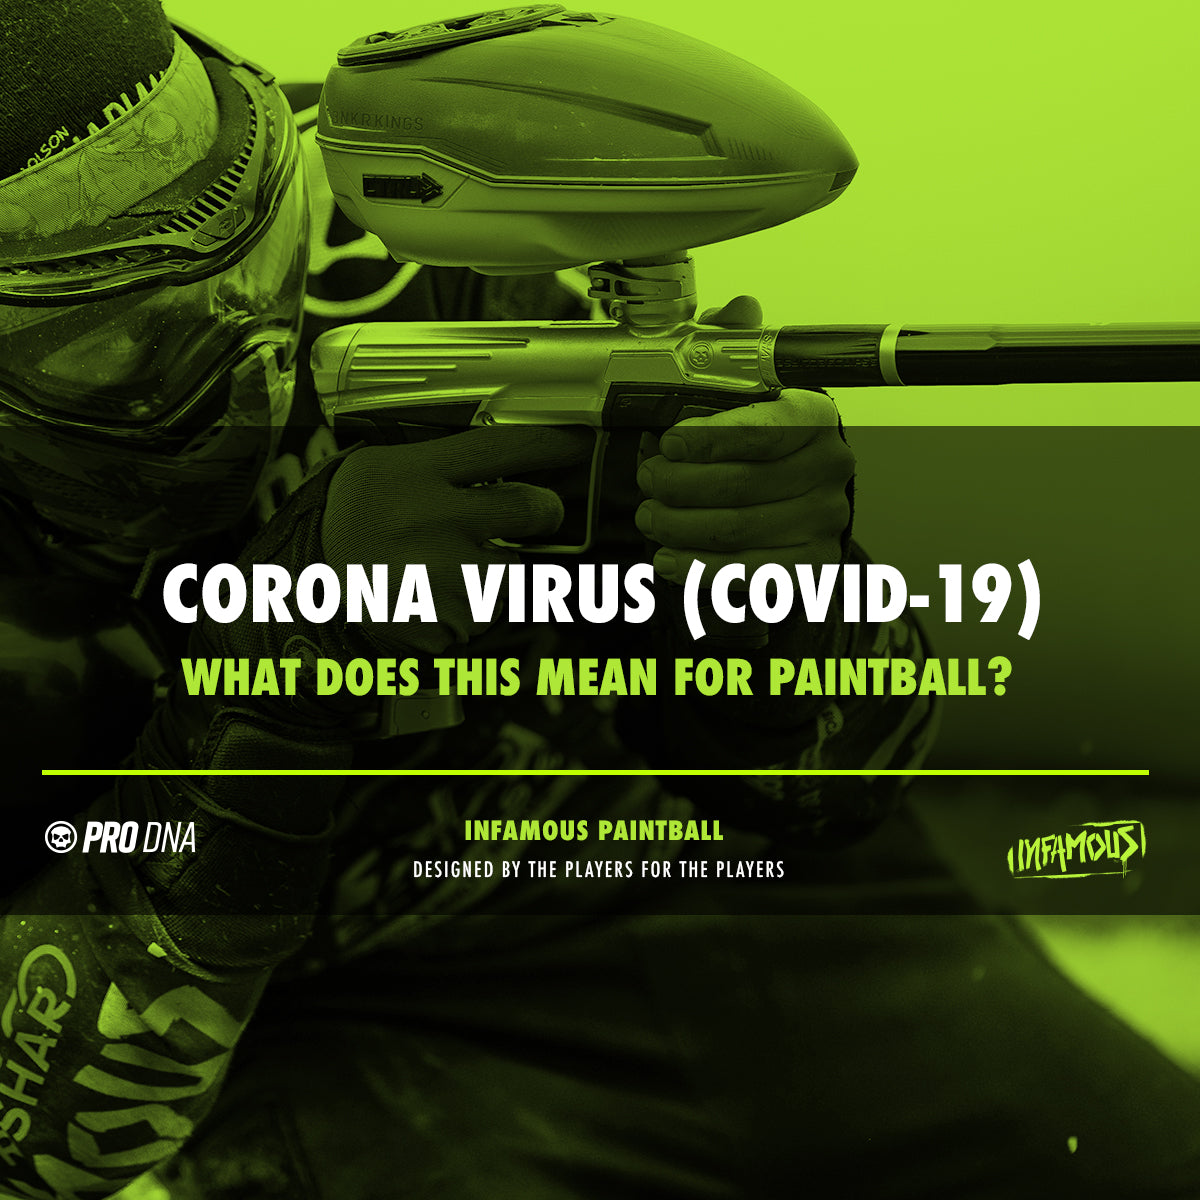 Corona Virus (COVID-19) - What does this mean for Paintball?